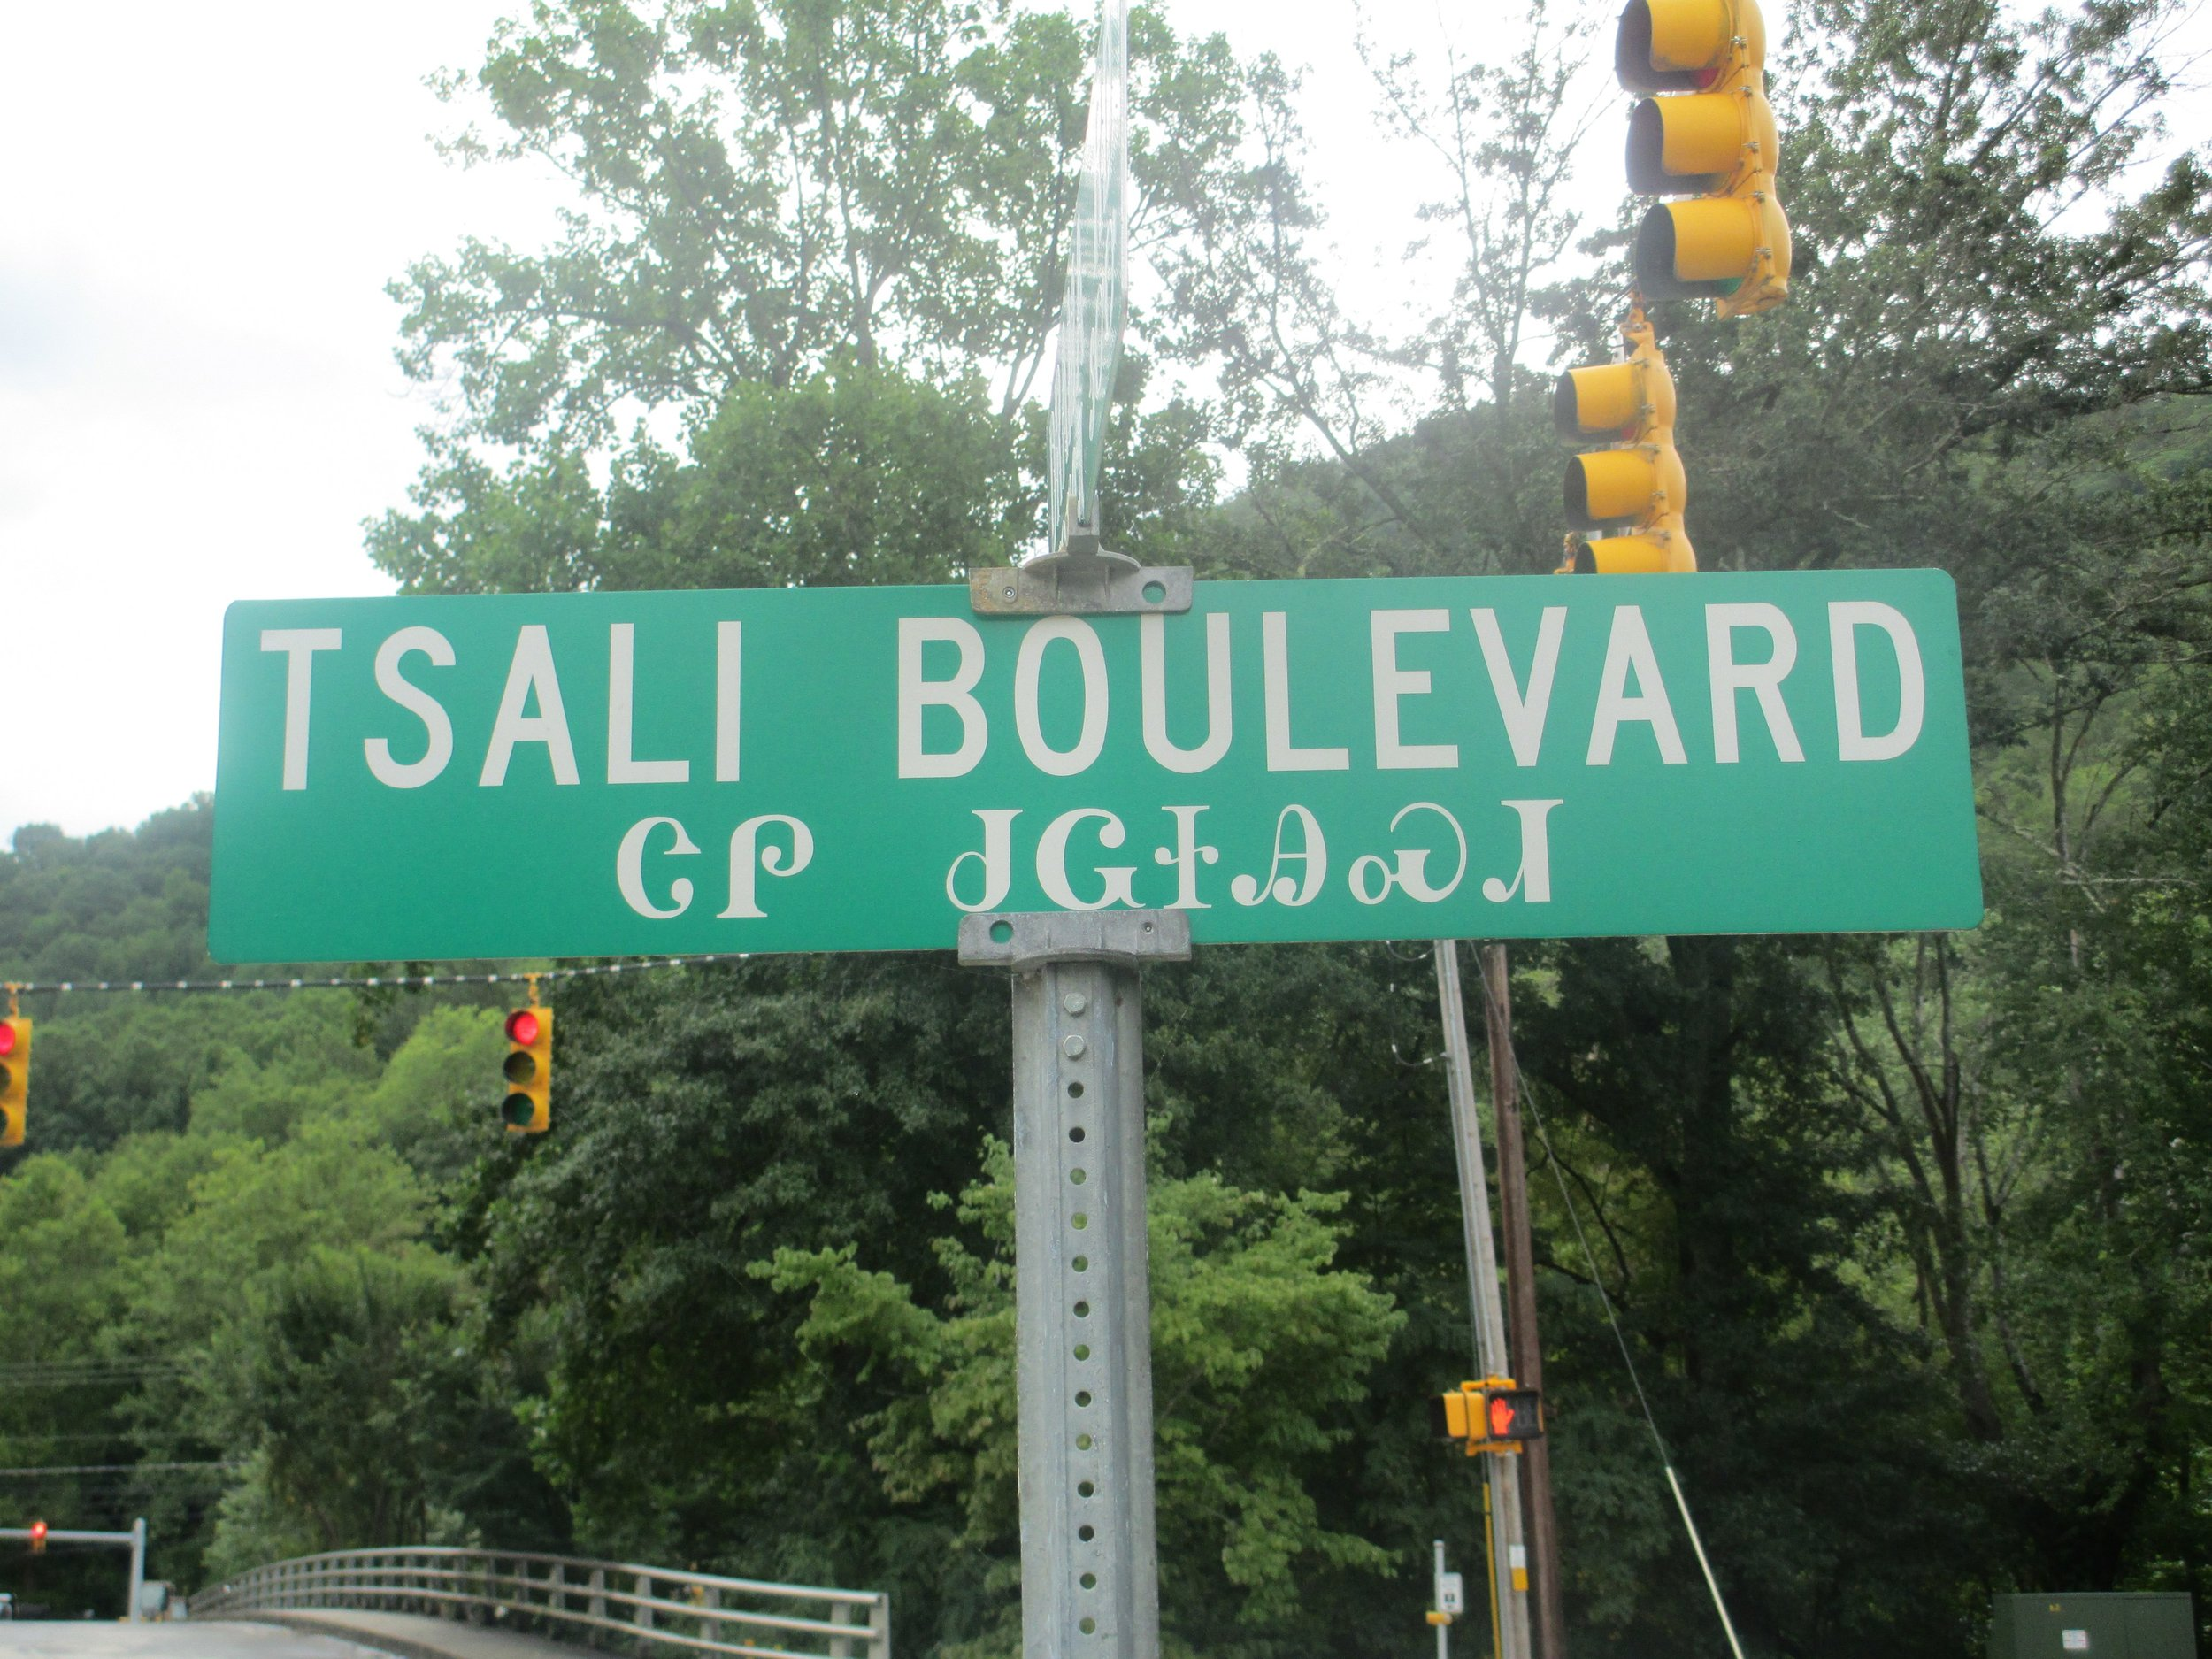 Street Sign in Cherokee, NC | Photo by Billy Hathorn via Wikimedia Commons